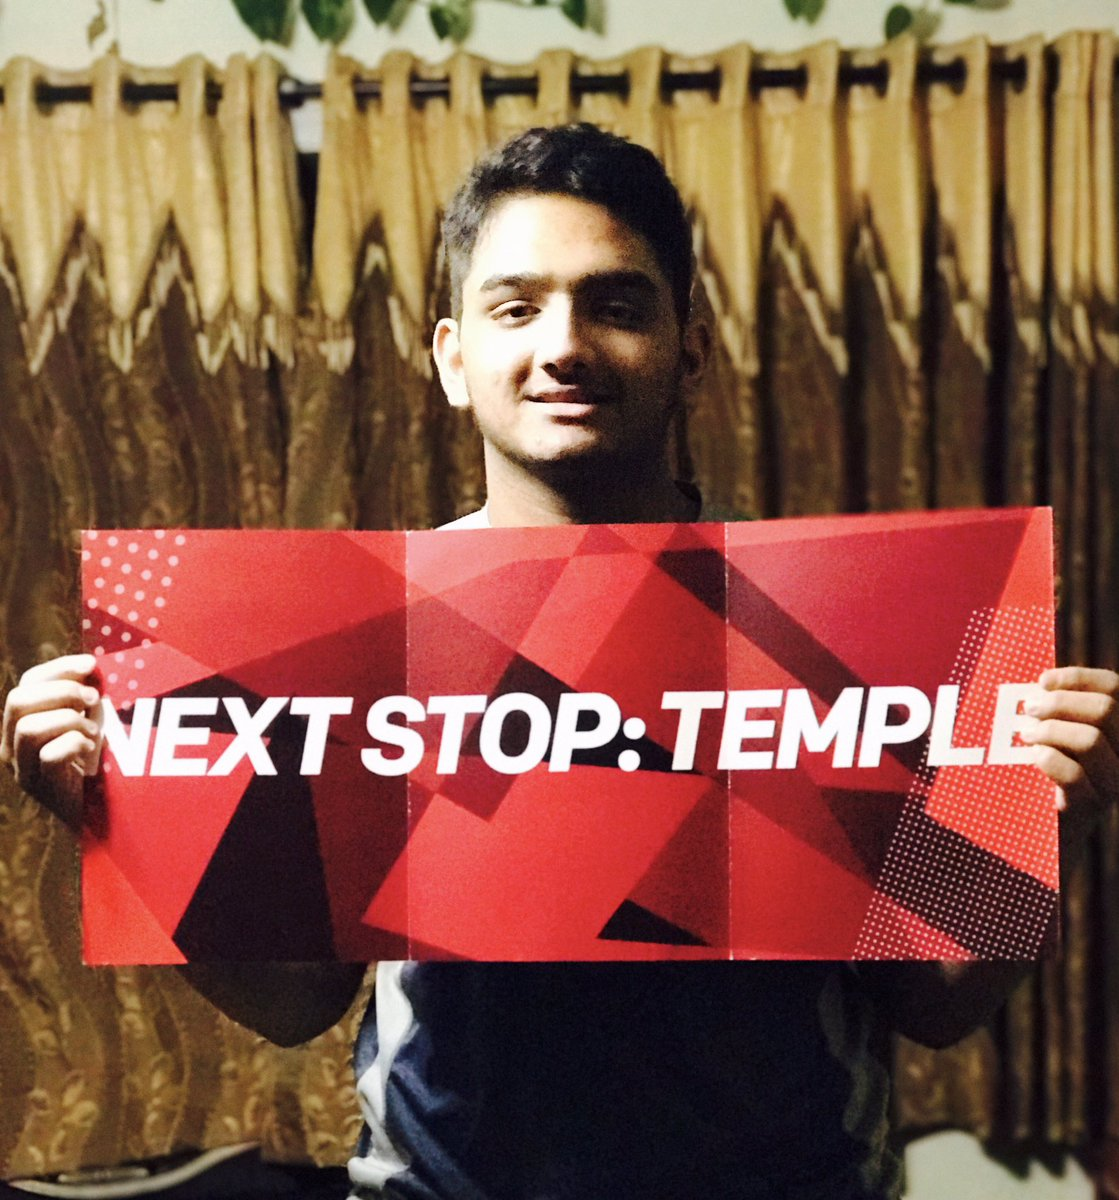 Temple Welcomes harishp499